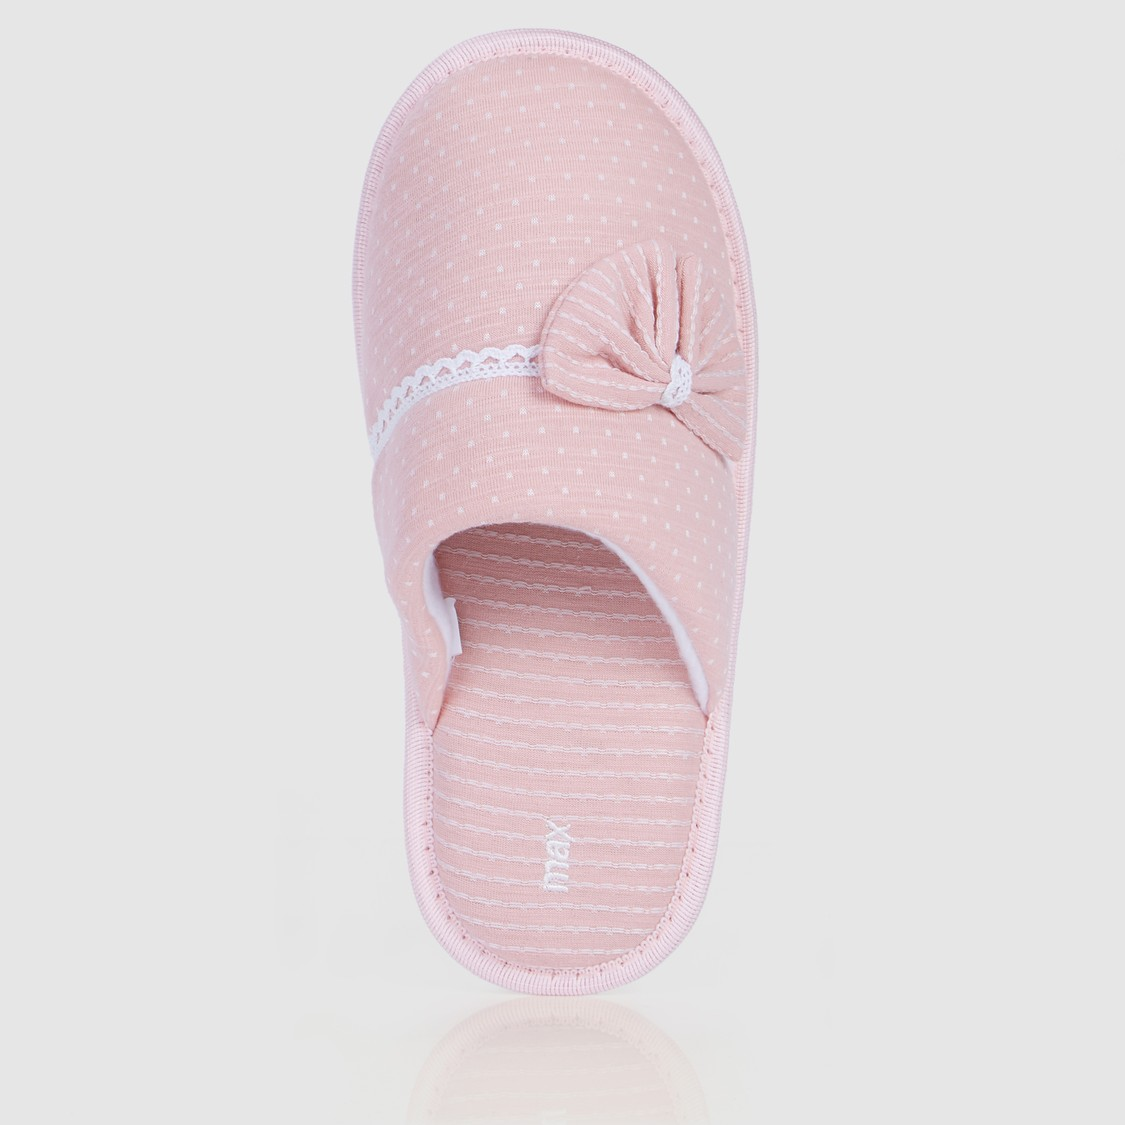 Mule Bedroom Slippers with Bow Applique